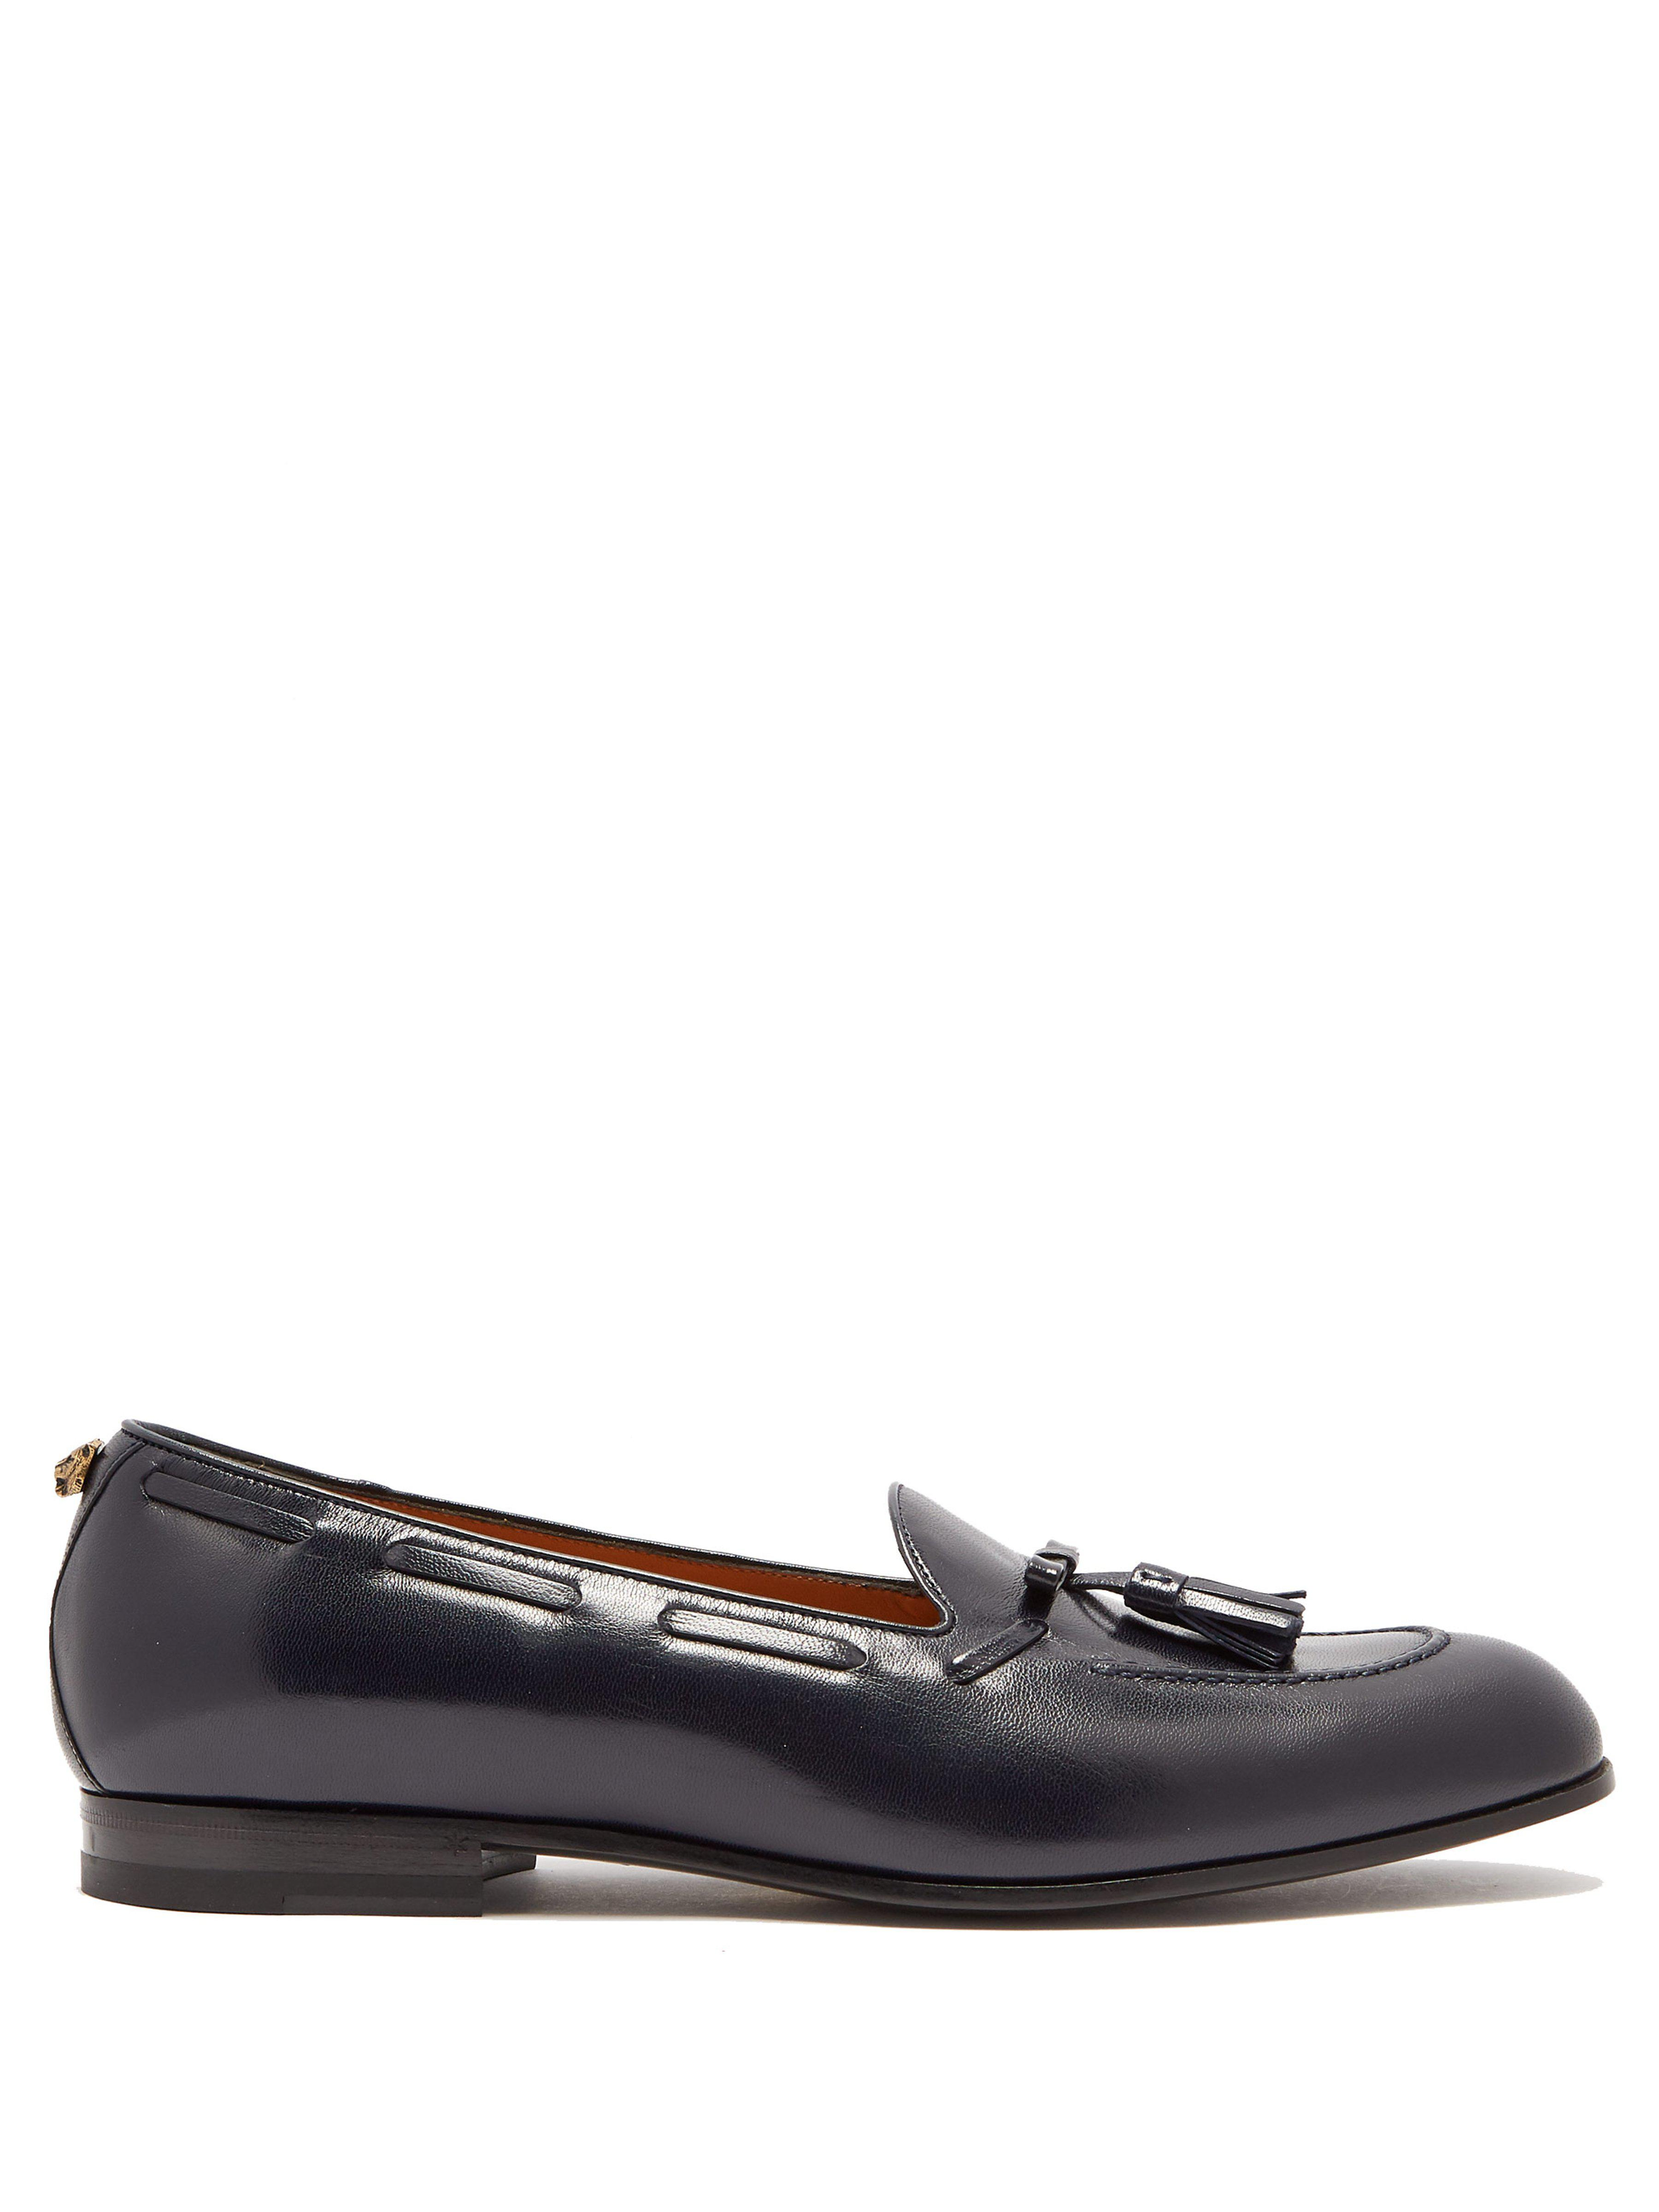 4fd02584c4b Gucci Leather Tassel Loafers in Blue for Men - Lyst